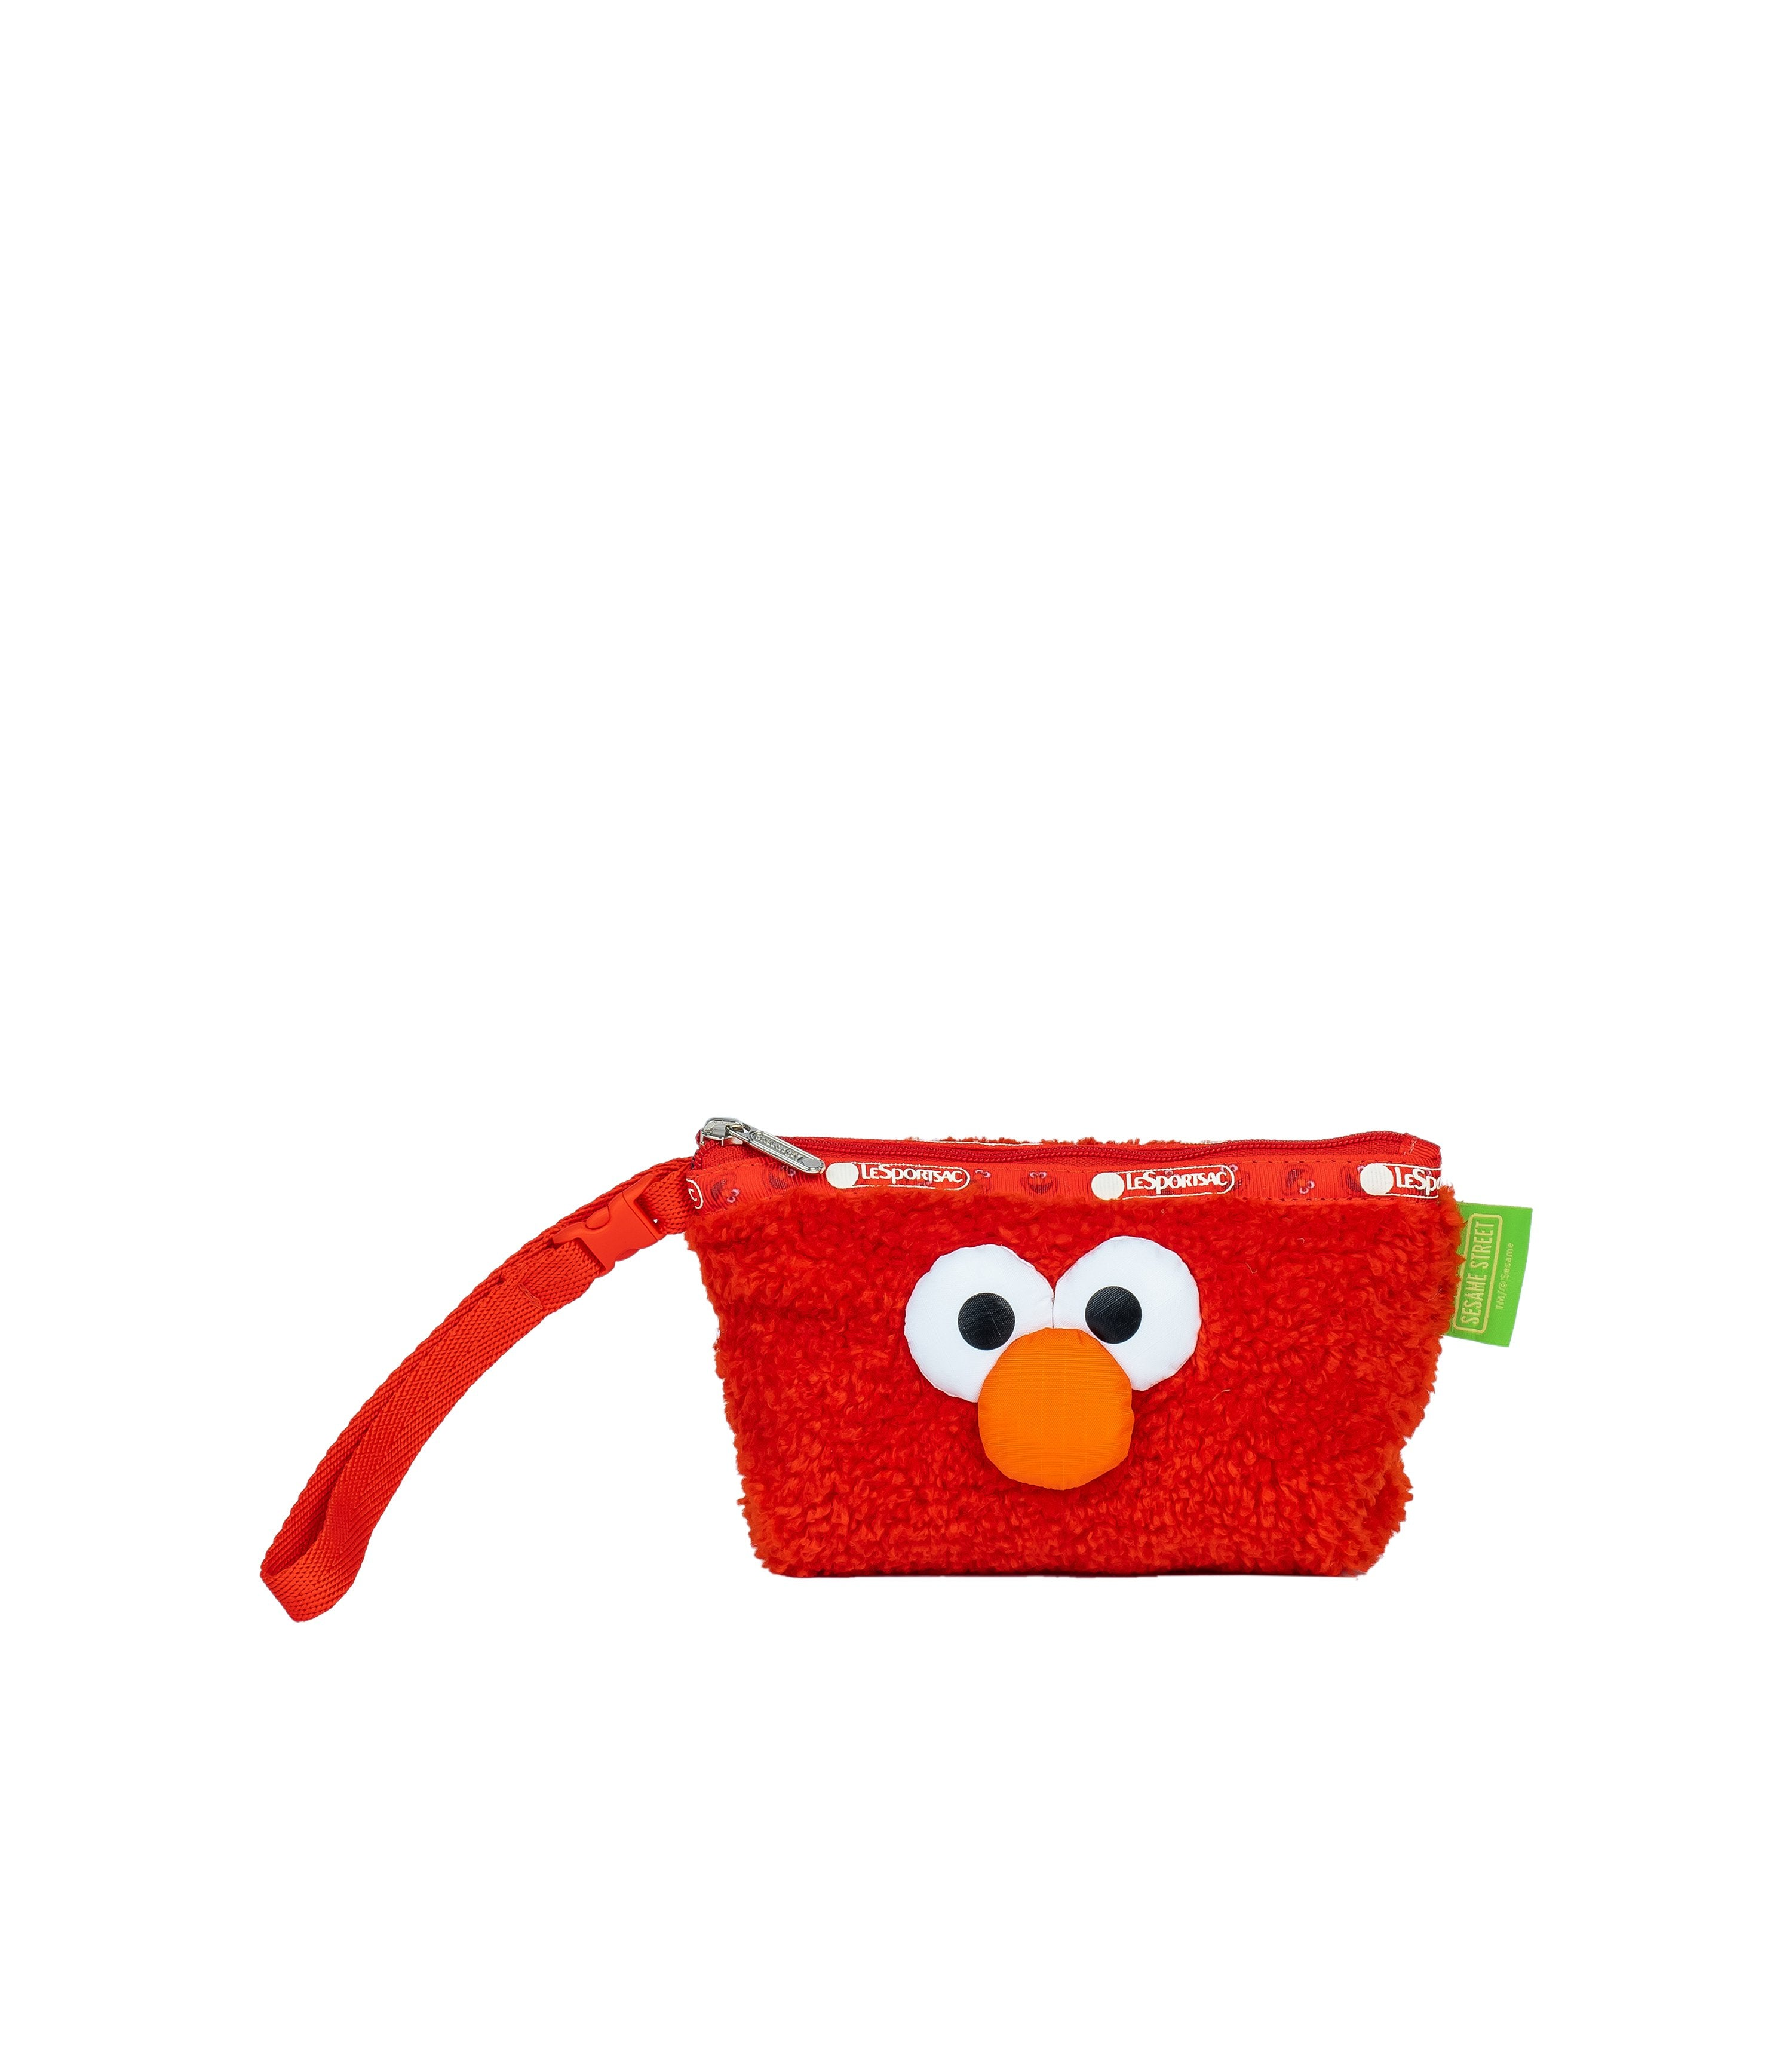 LeSportsac - Accessories - Small Cosmetic Wristlet - Elmo